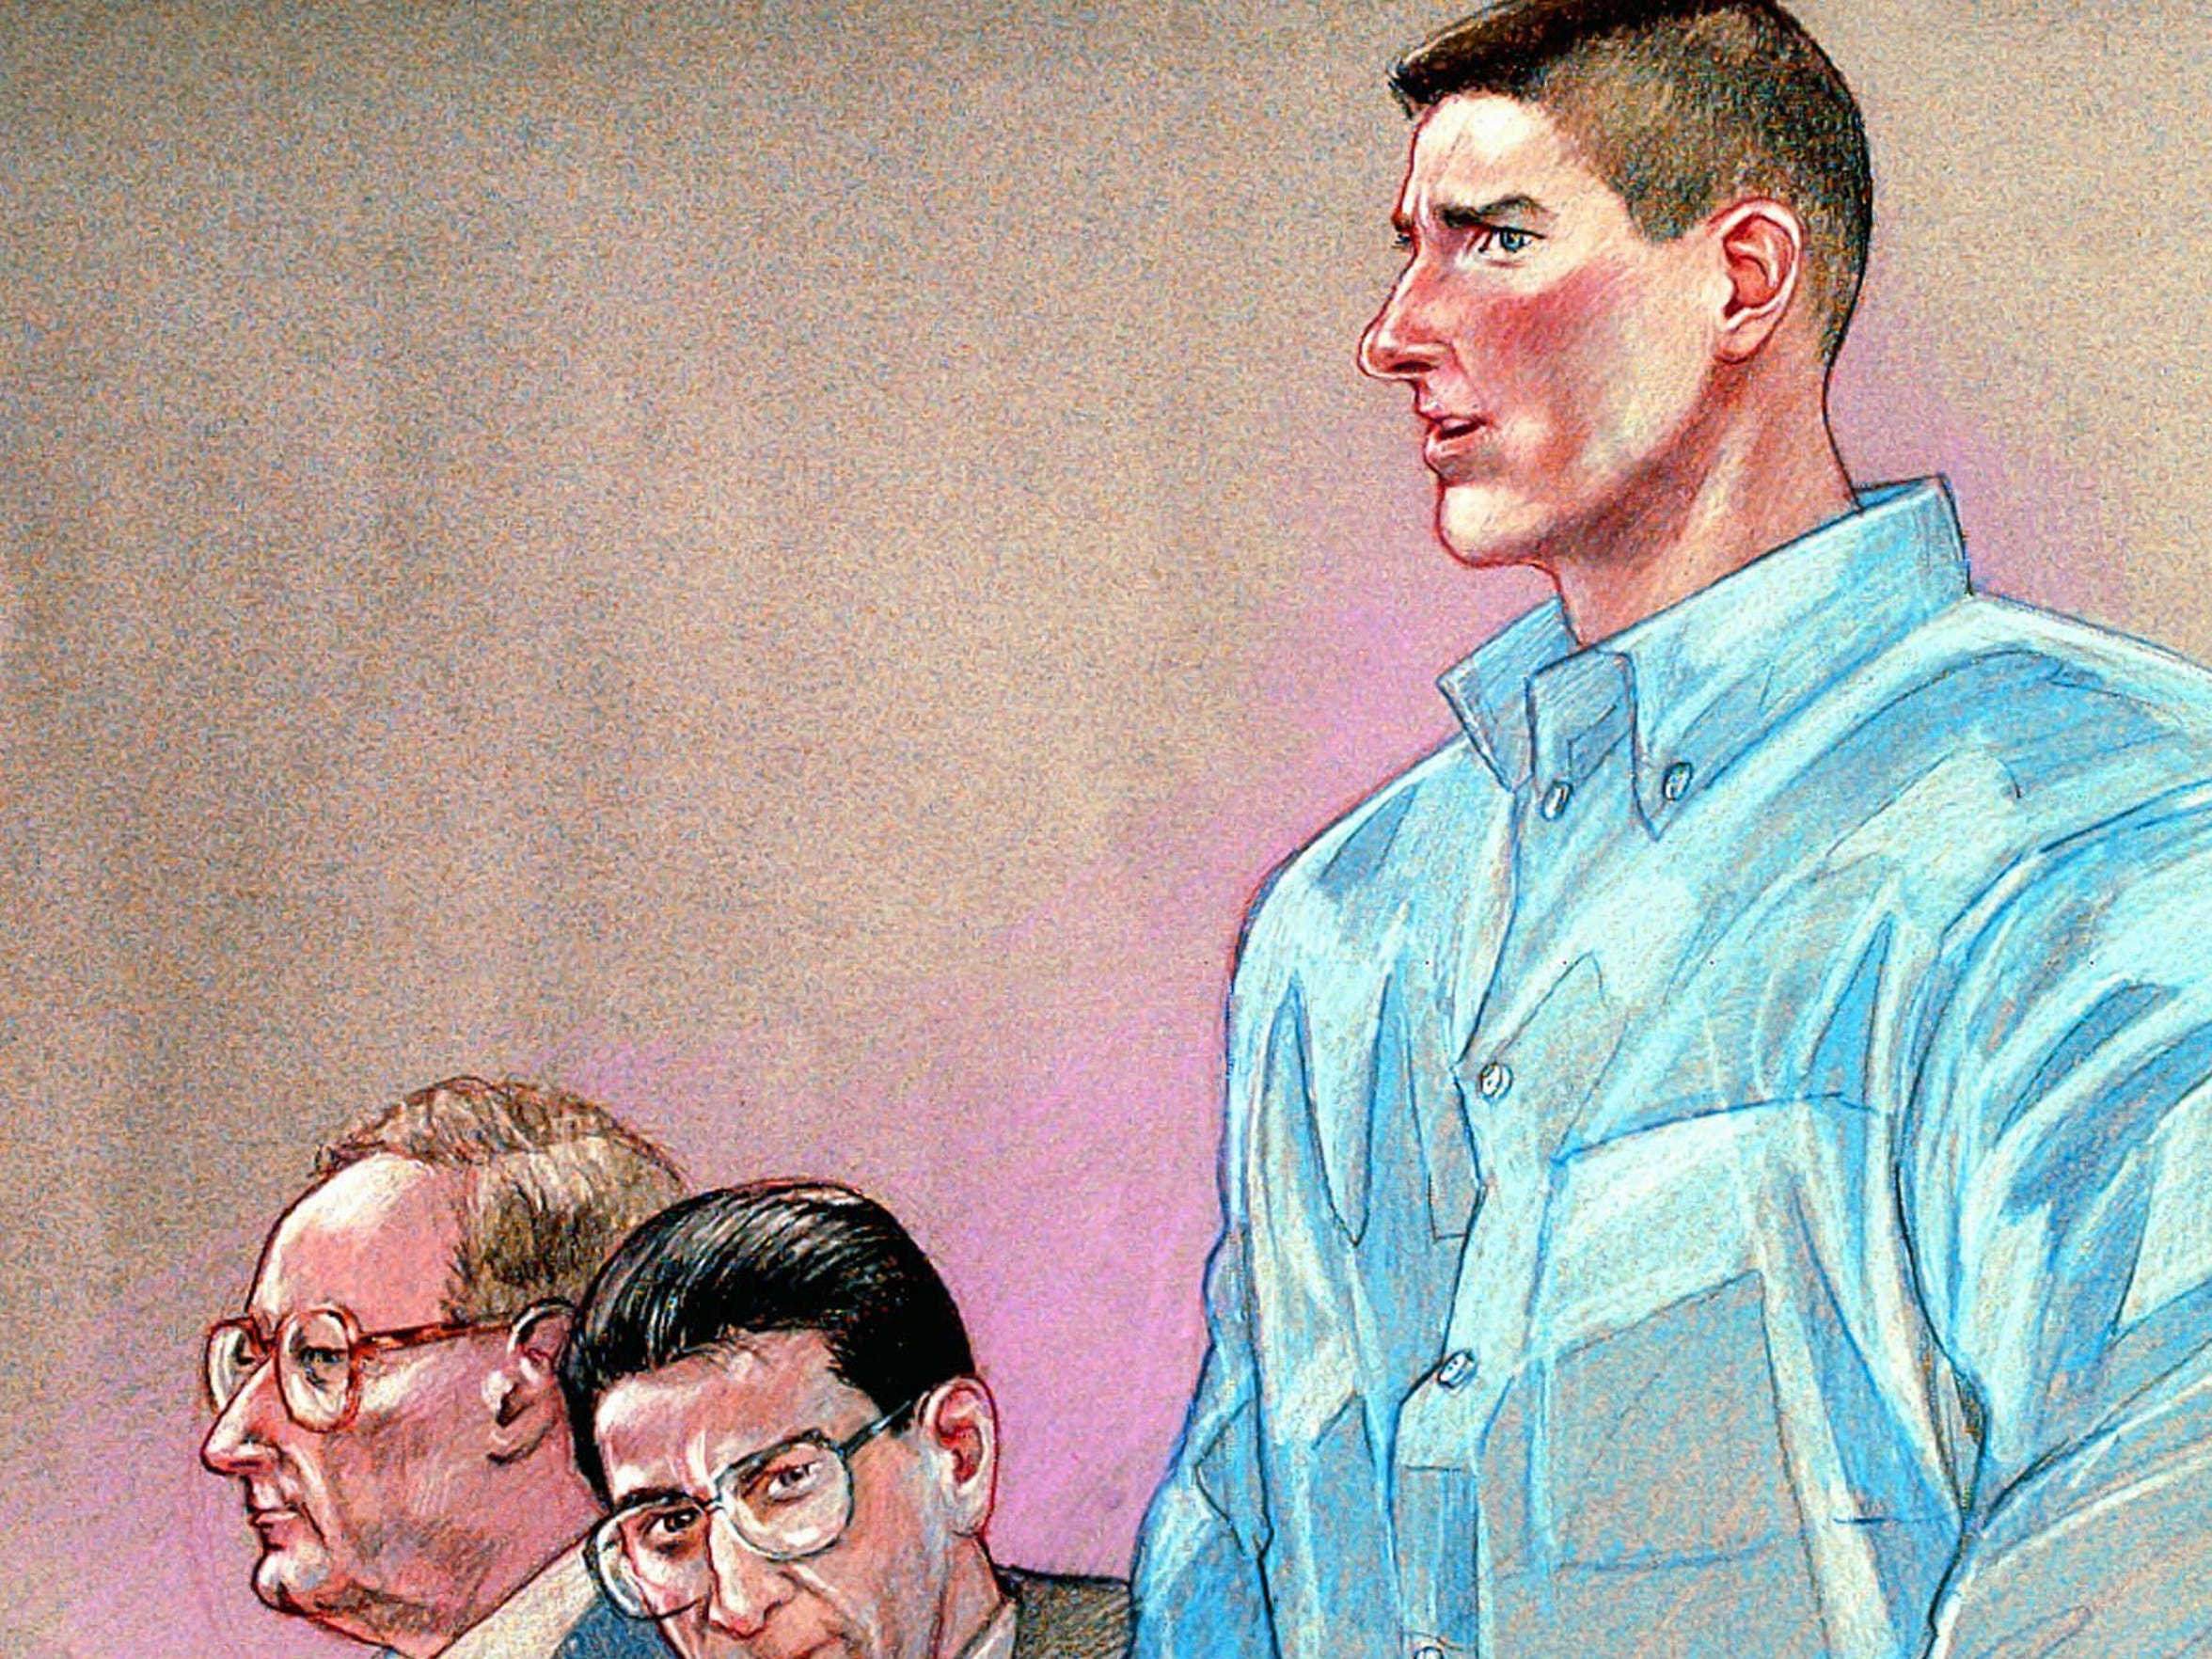 Timothy McVeigh addresses the court at his trial in Denver on May 15, 1997, as shown in this courtroom drawing by CBS News artist Pat Lopez.  Defense attorneys Stephen Jones, left, and Robert Nigh, center, look on.